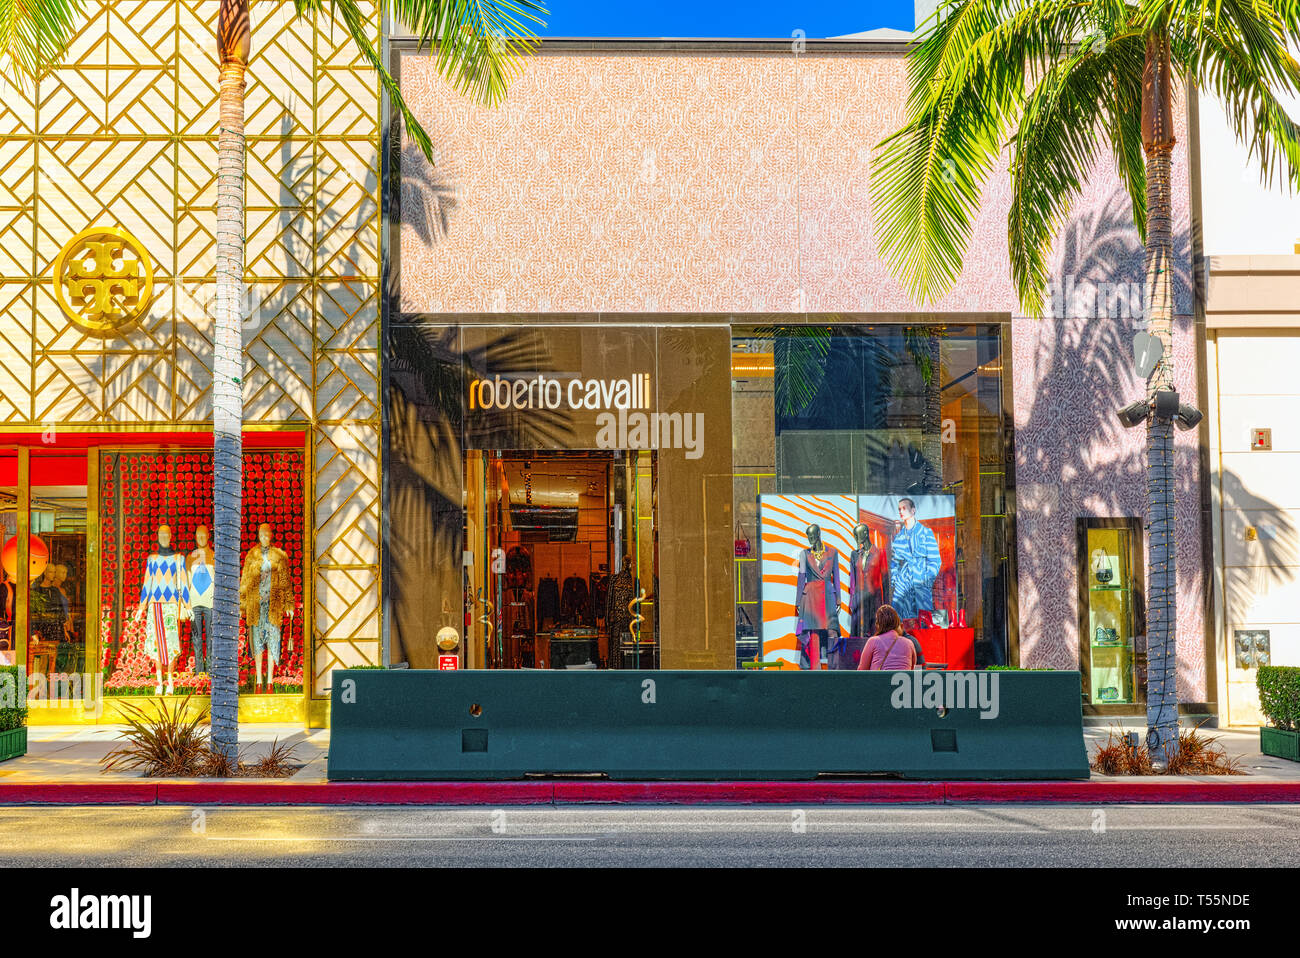 Los Angelos, California, USA - September 23, 2018: View of the fashionable street Rodeo Drive in Hollywood, LA. Stock Photo